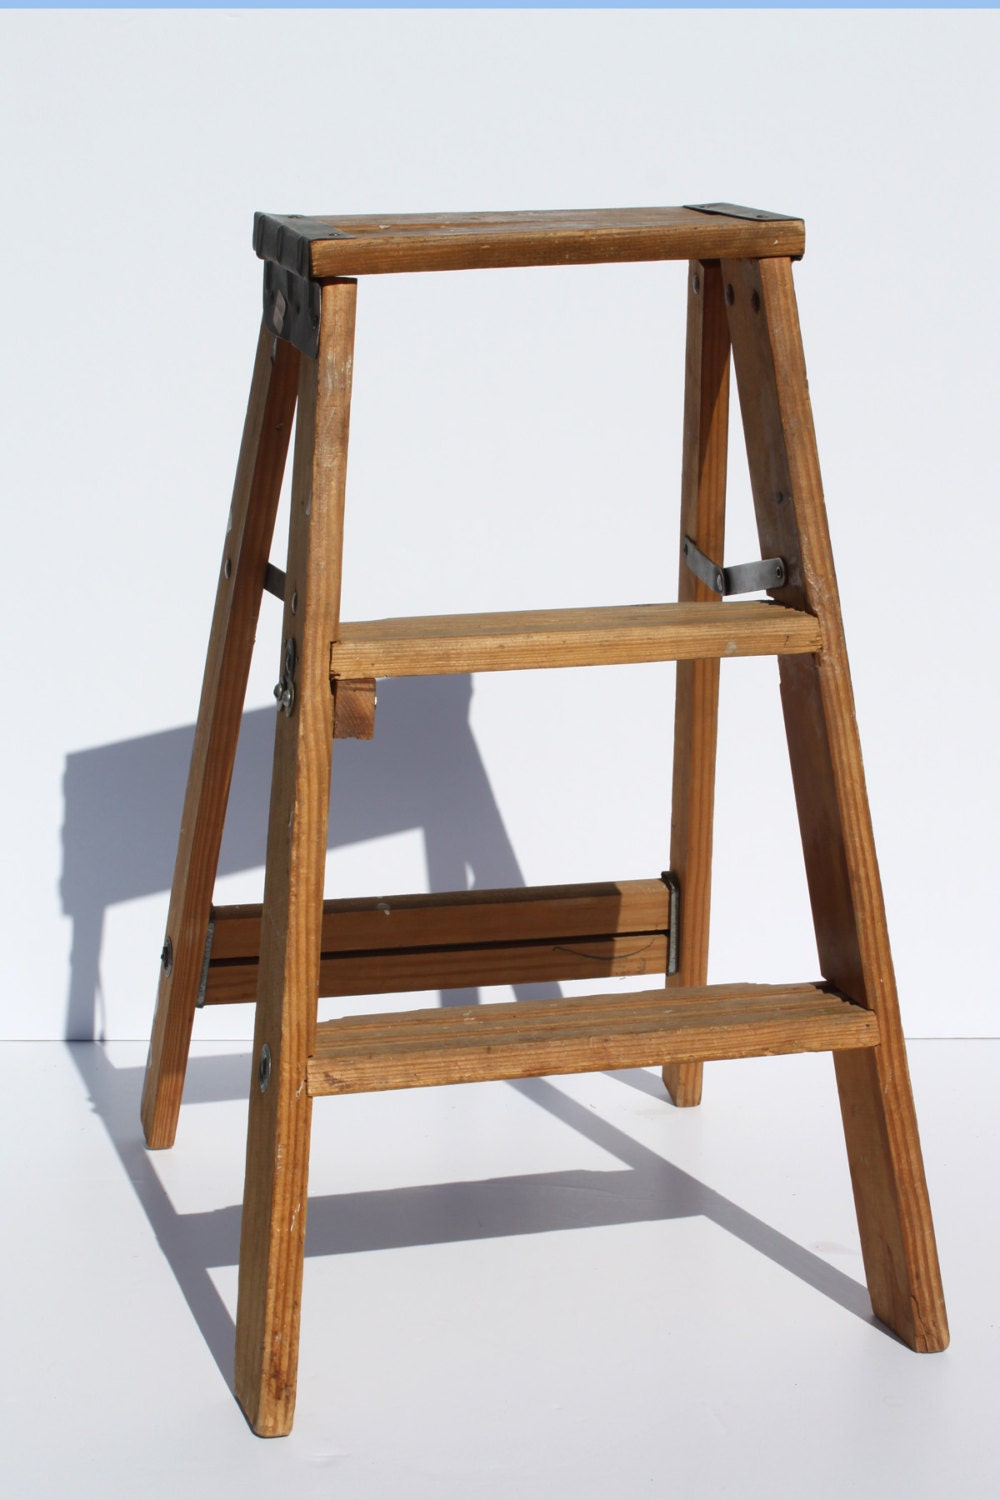 Vintage Wood Ladder Folding Two Step Wooden Ladder Industrial